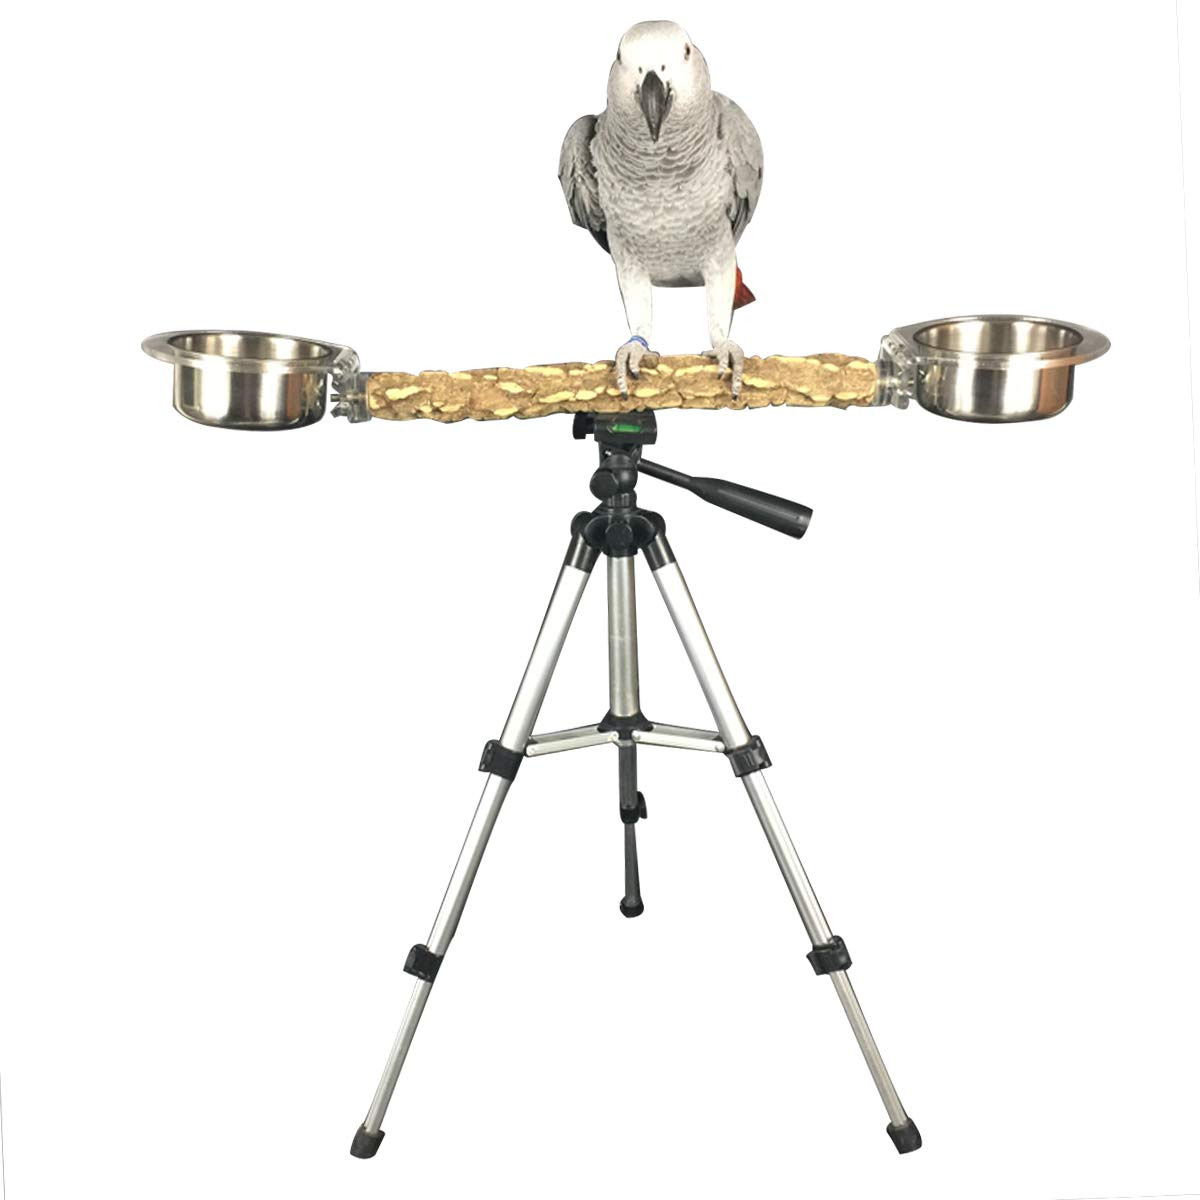 TOYPOPOR Bird Travel Perches Portable Training Bird Perch Stand with 2 Cups Play for Medium and Large Breeds by TOYPOPOR